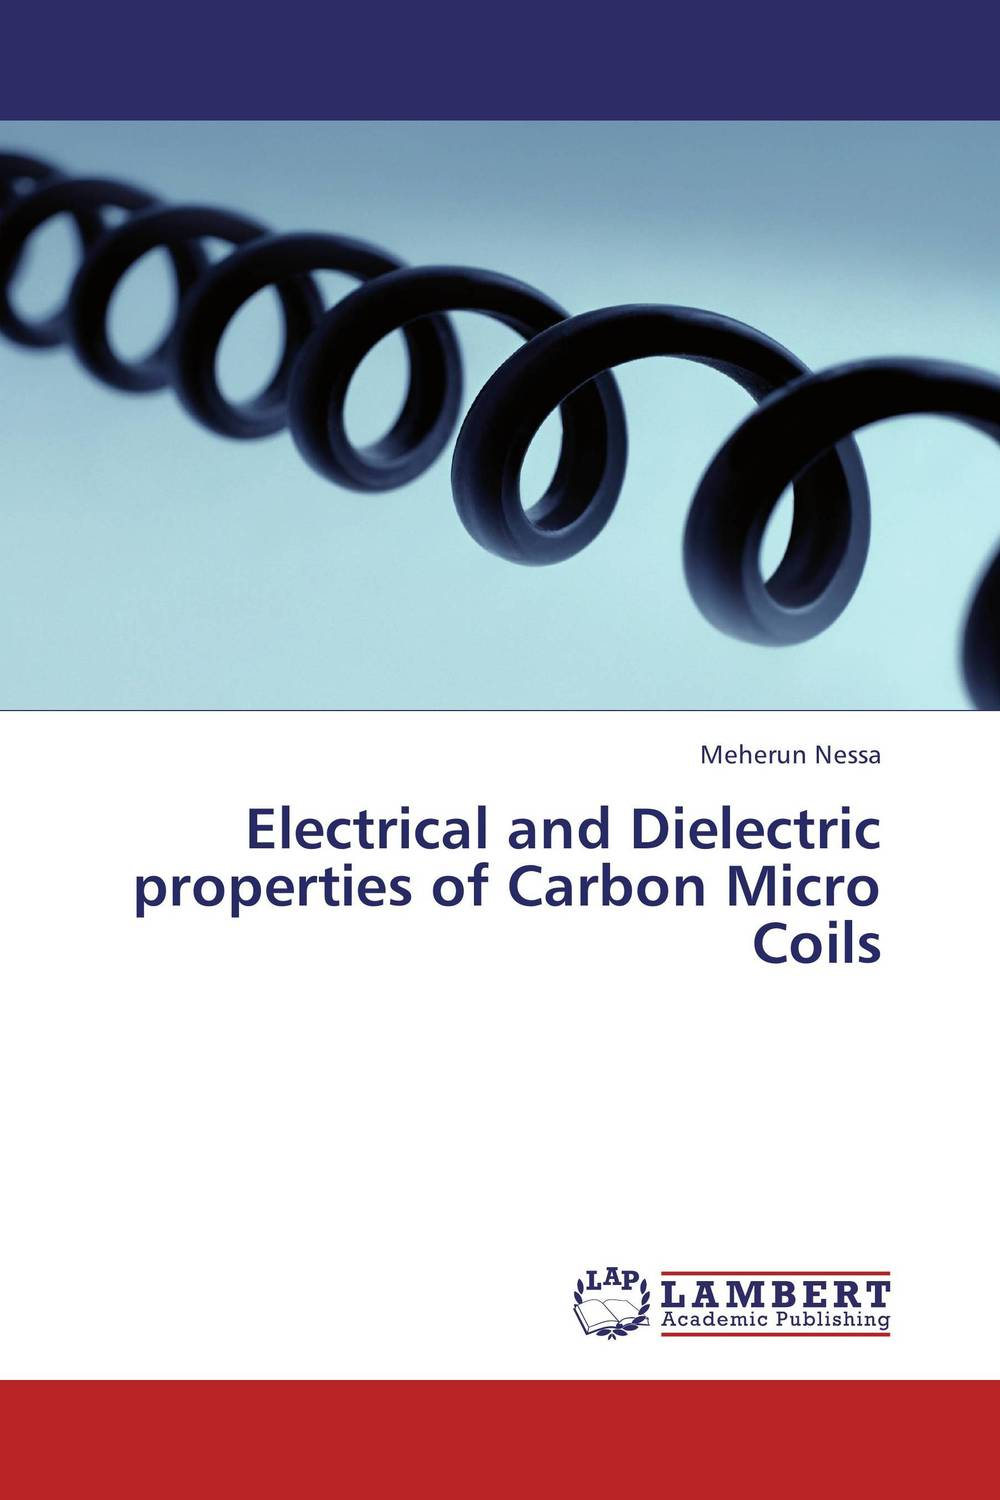 Electrical and Dielectric properties of Carbon Micro Coils juan martinez vega dielectric materials for electrical engineering